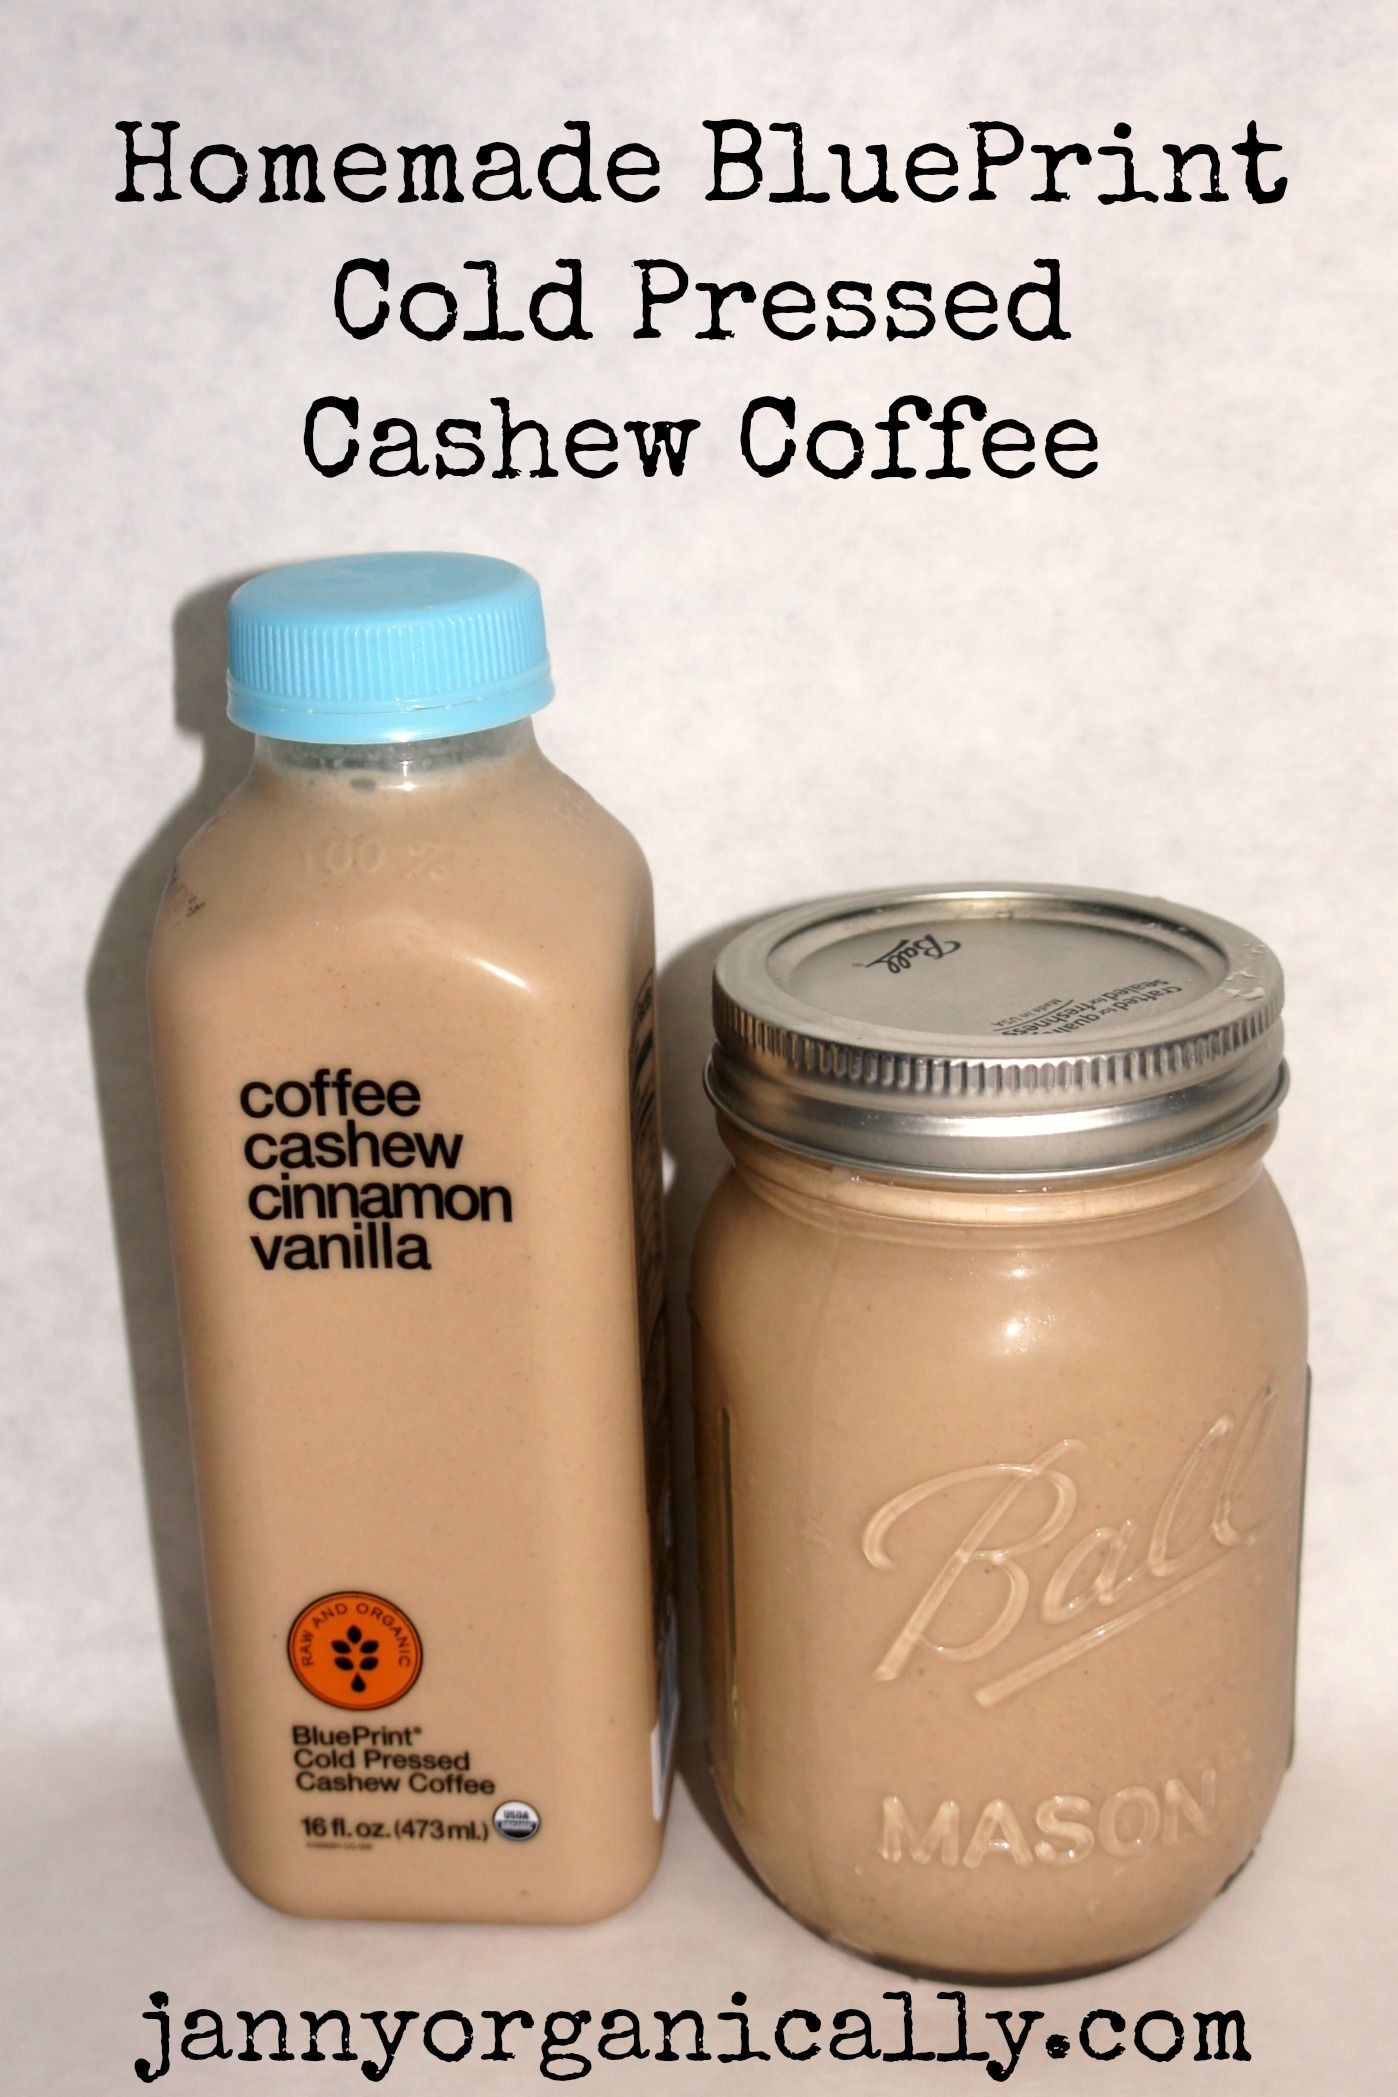 Homemade blueprint organic cold pressed cashew coffee pinterest homemade blueprint organic cold pressed cashew coffee dairyfree jannyorganically malvernweather Image collections